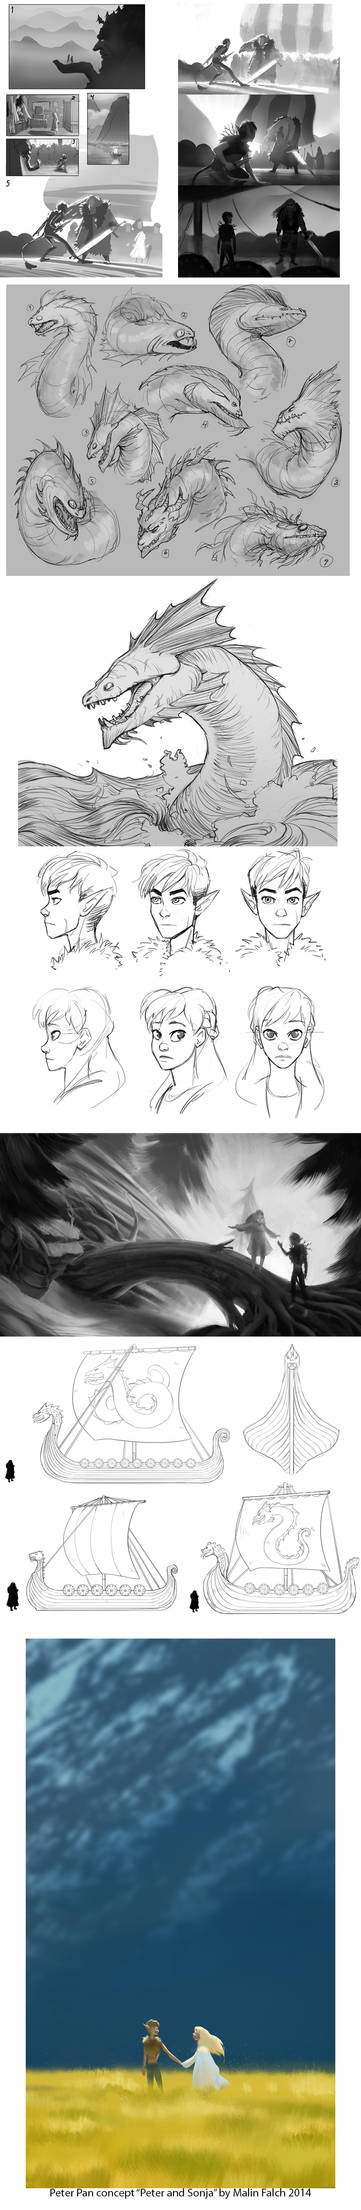 Peter Pan concept sketches